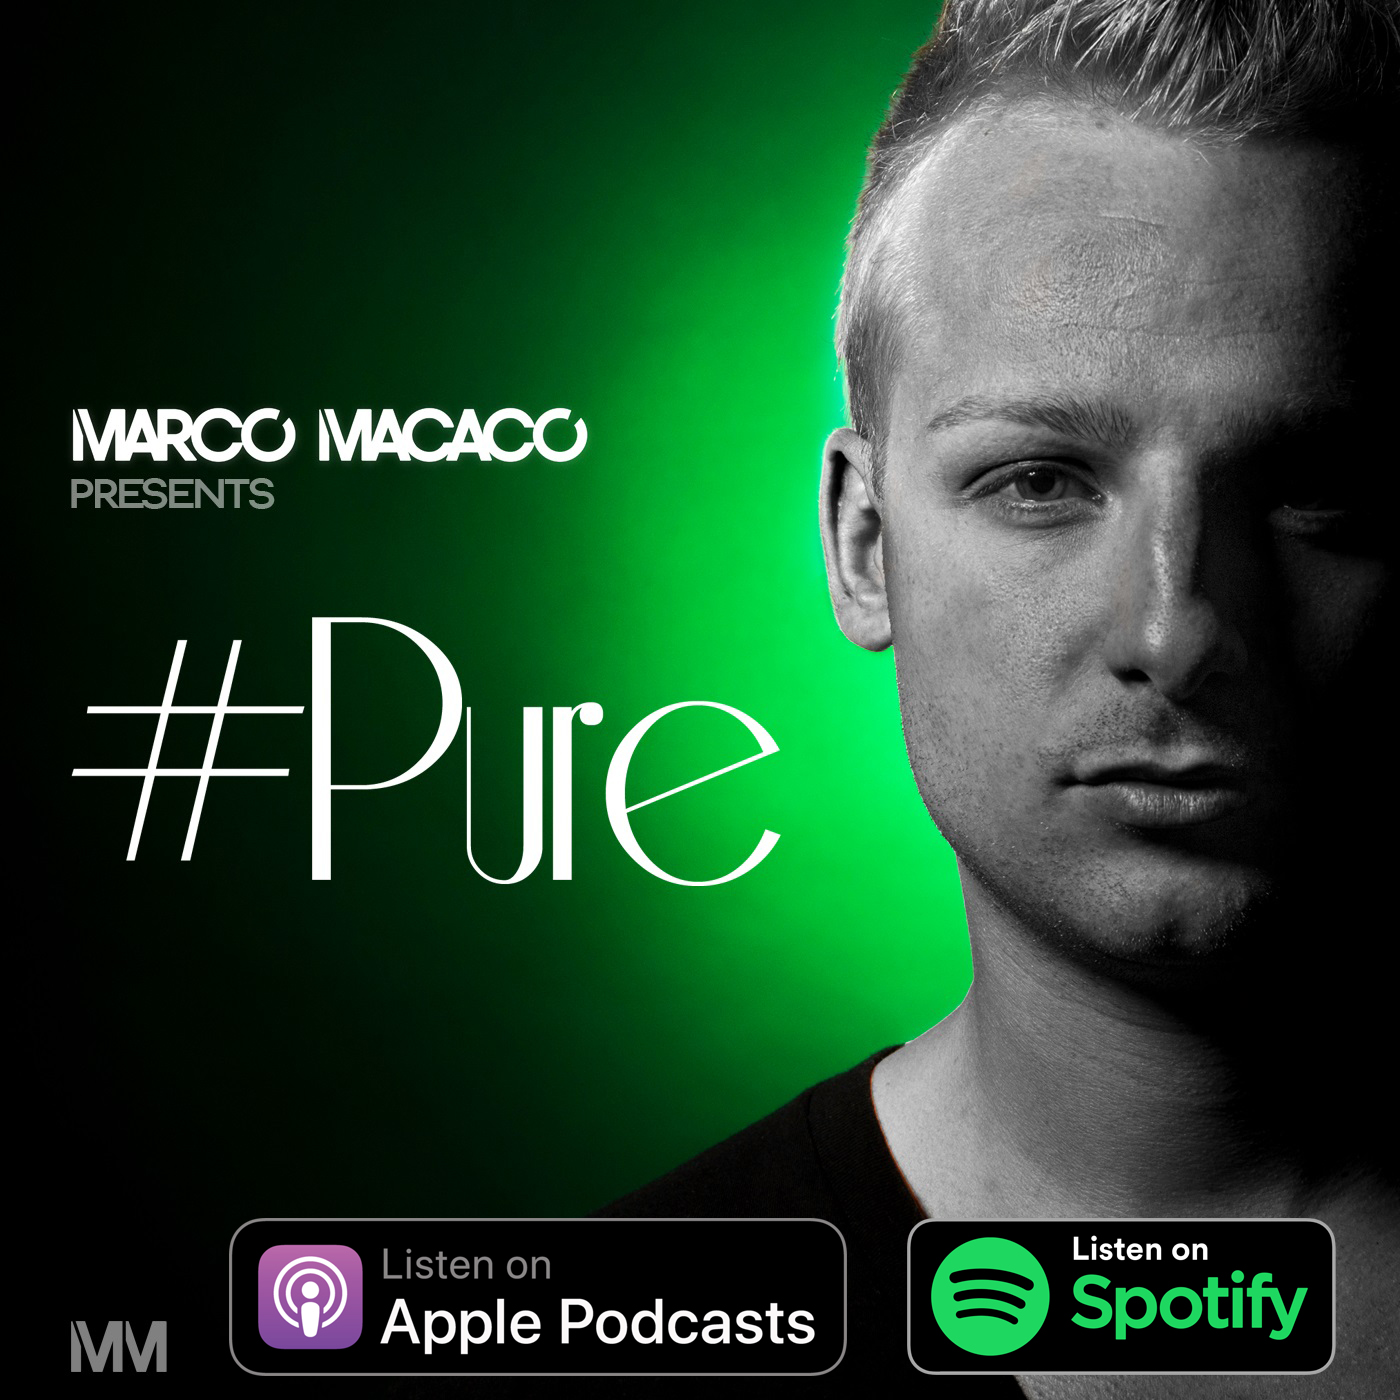 Marco Macaco presents #Pure